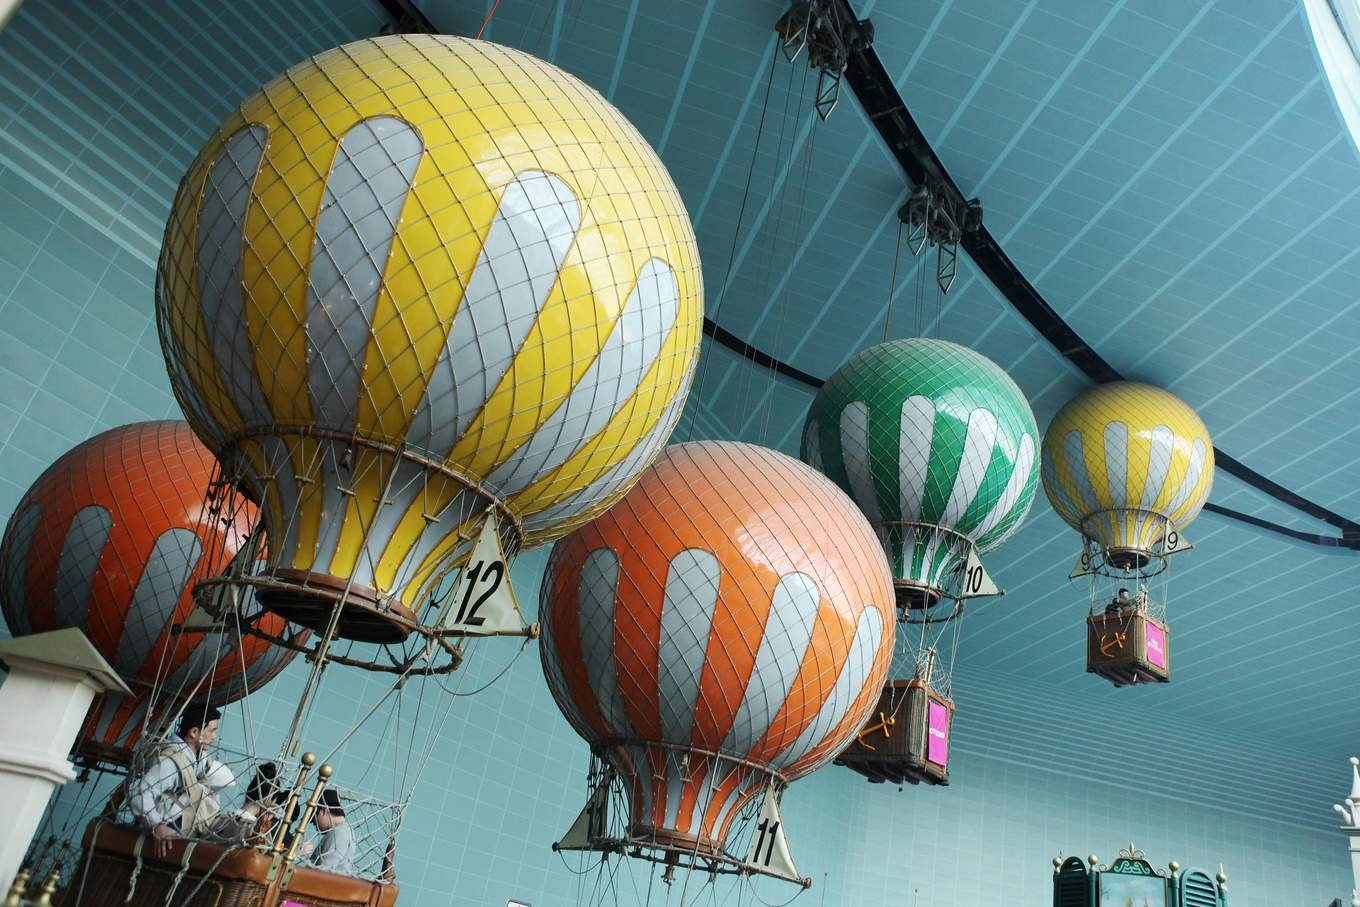 All-You-Need-To-Know-To-Conquer-Lotte-World-aeronaut-balloon